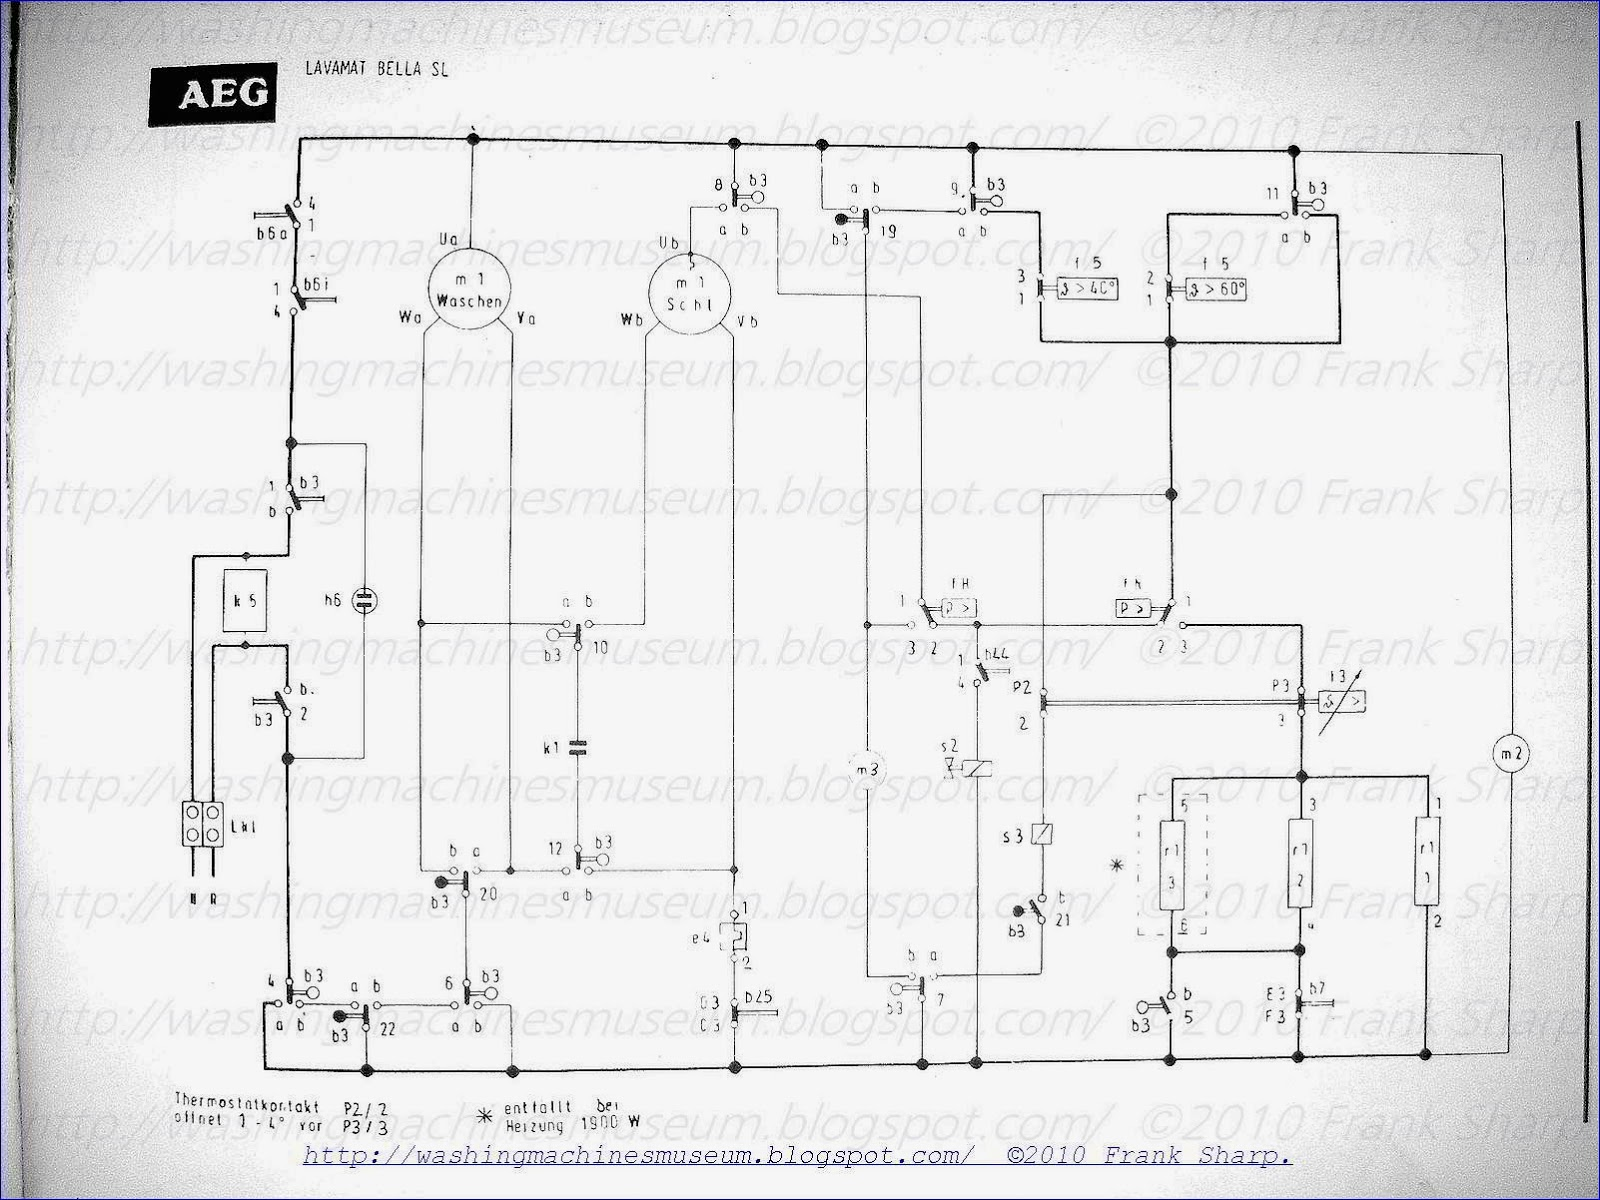 medium resolution of sharp washing machine wiring diagram wiring diagram info aeg washing machine motor wiring diagram aeg washing machine wiring diagram